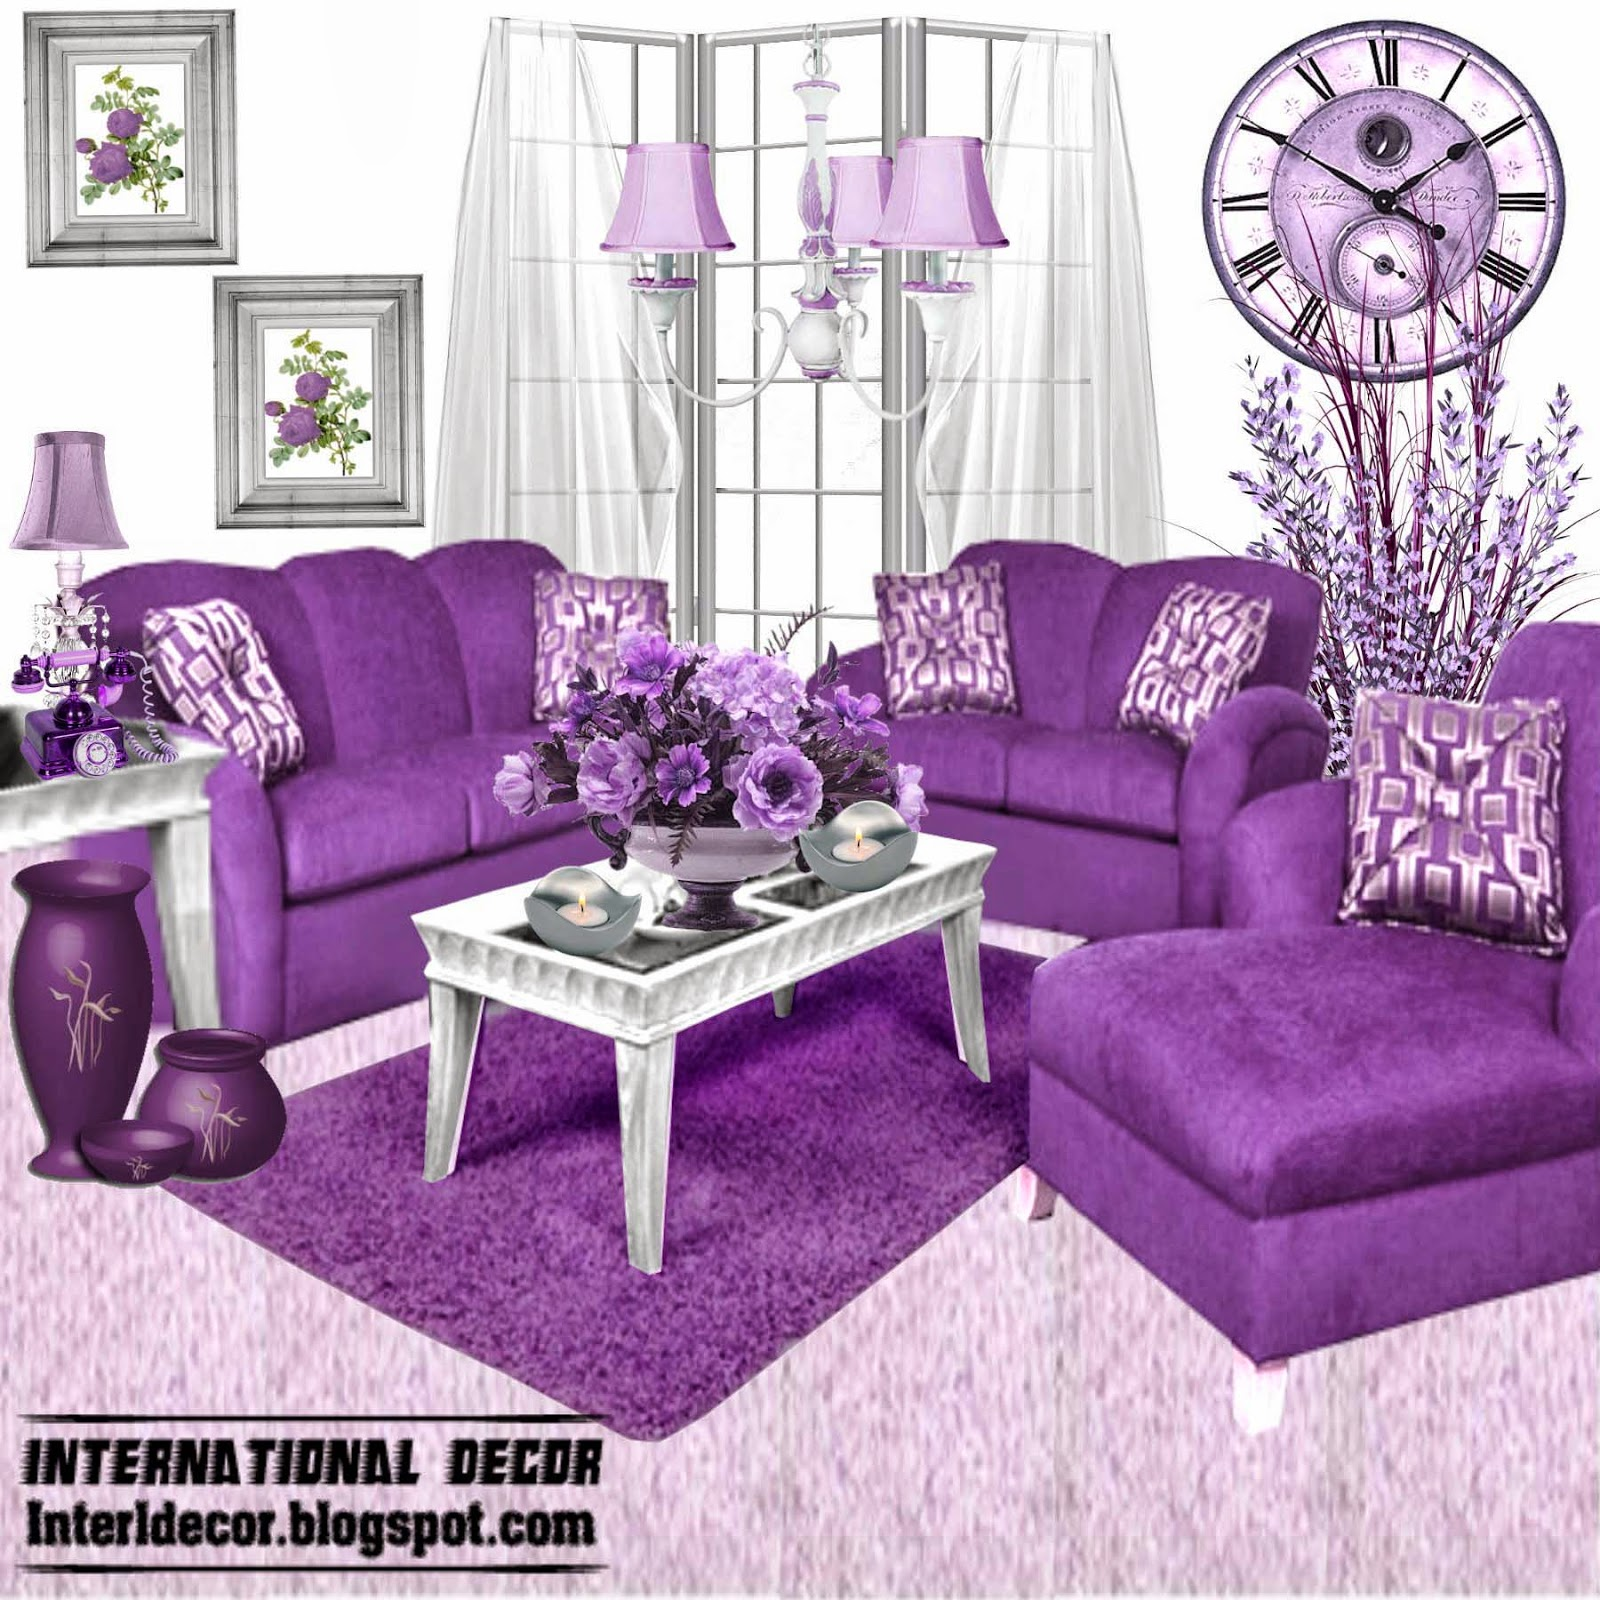 Luxury purple furniture sets sofas chairs for living for Violet home